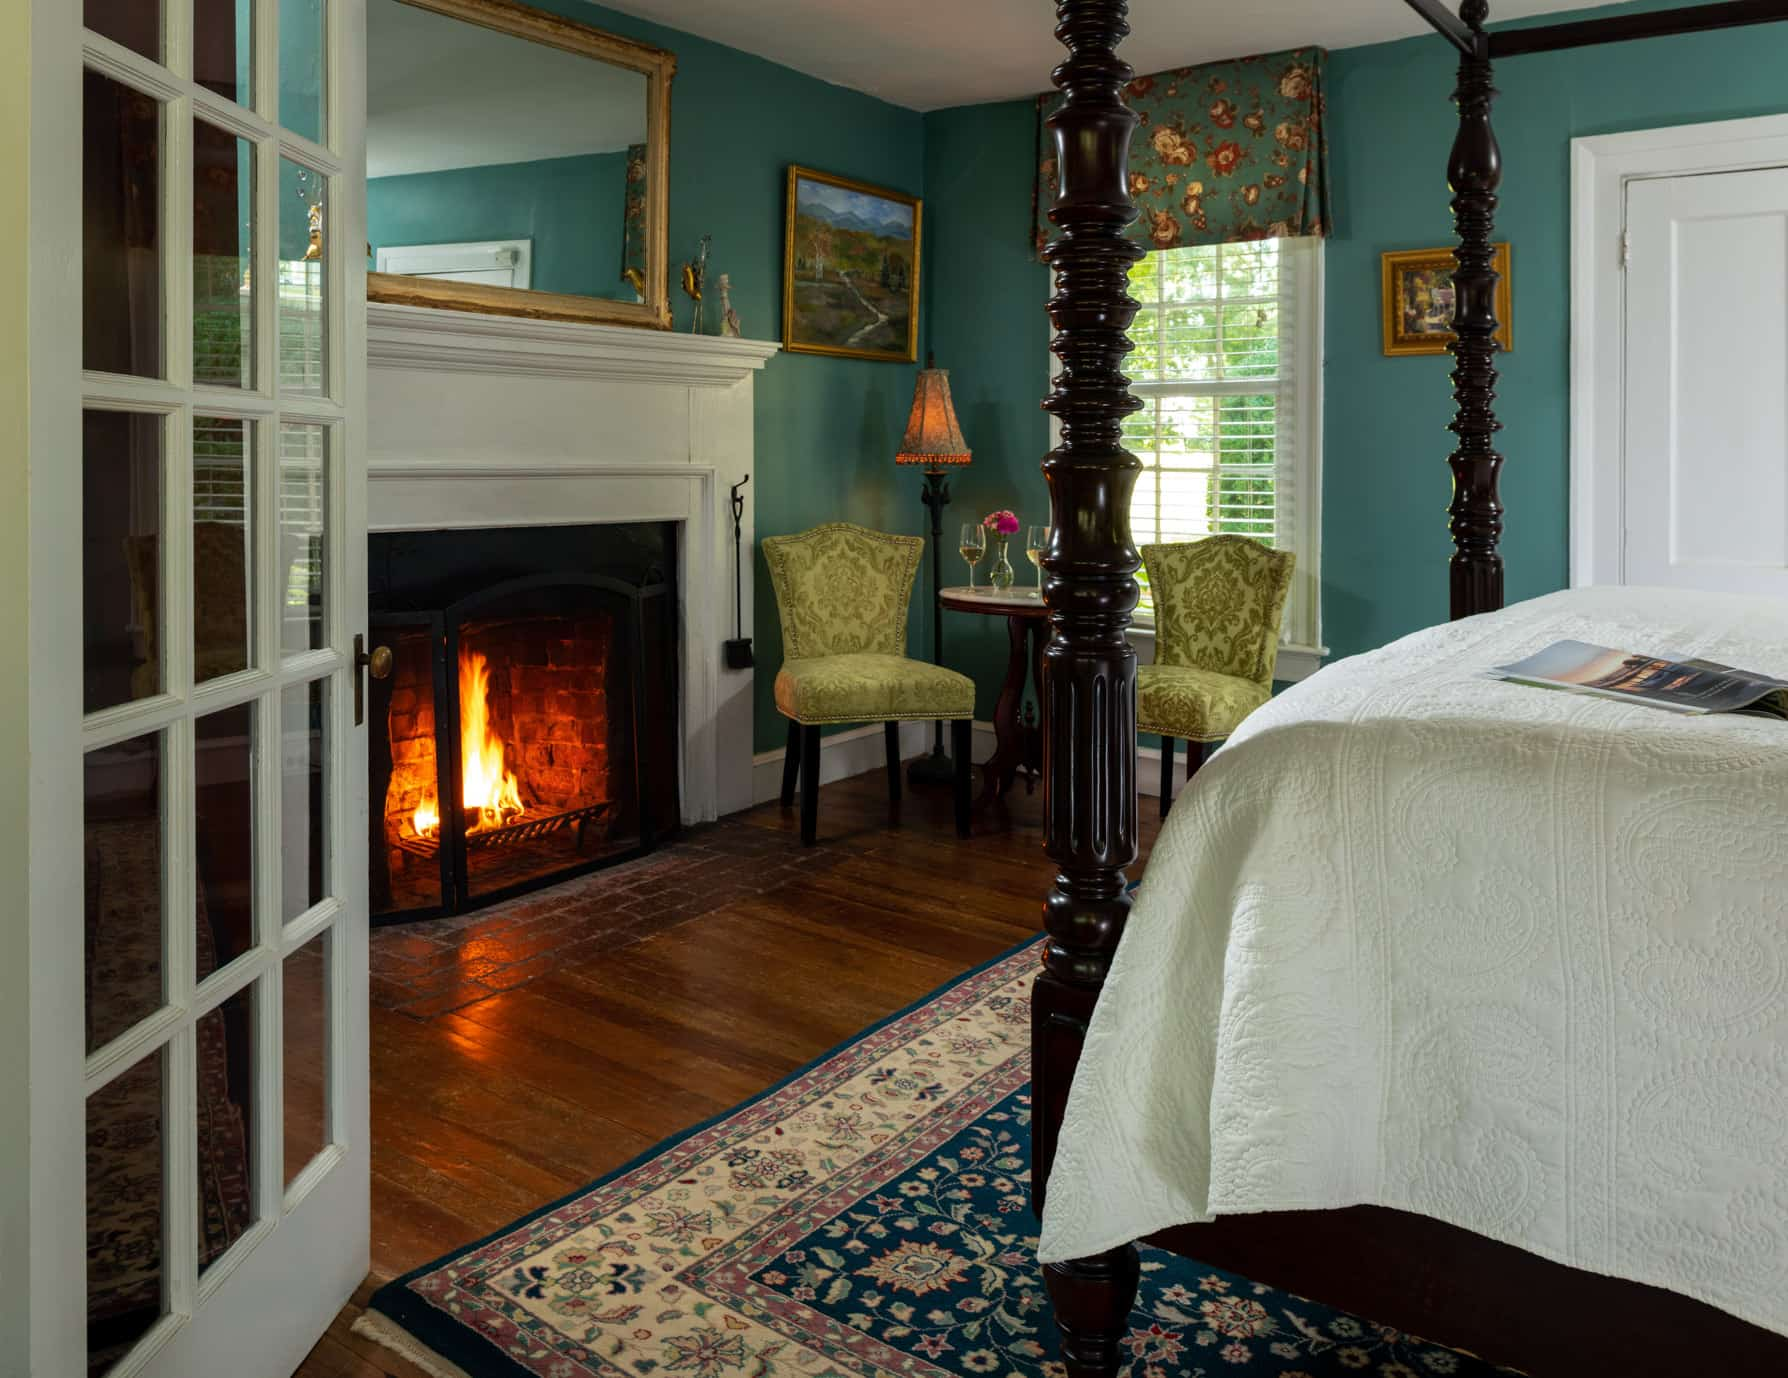 Wood-burning fireplace at the foot of a king bed